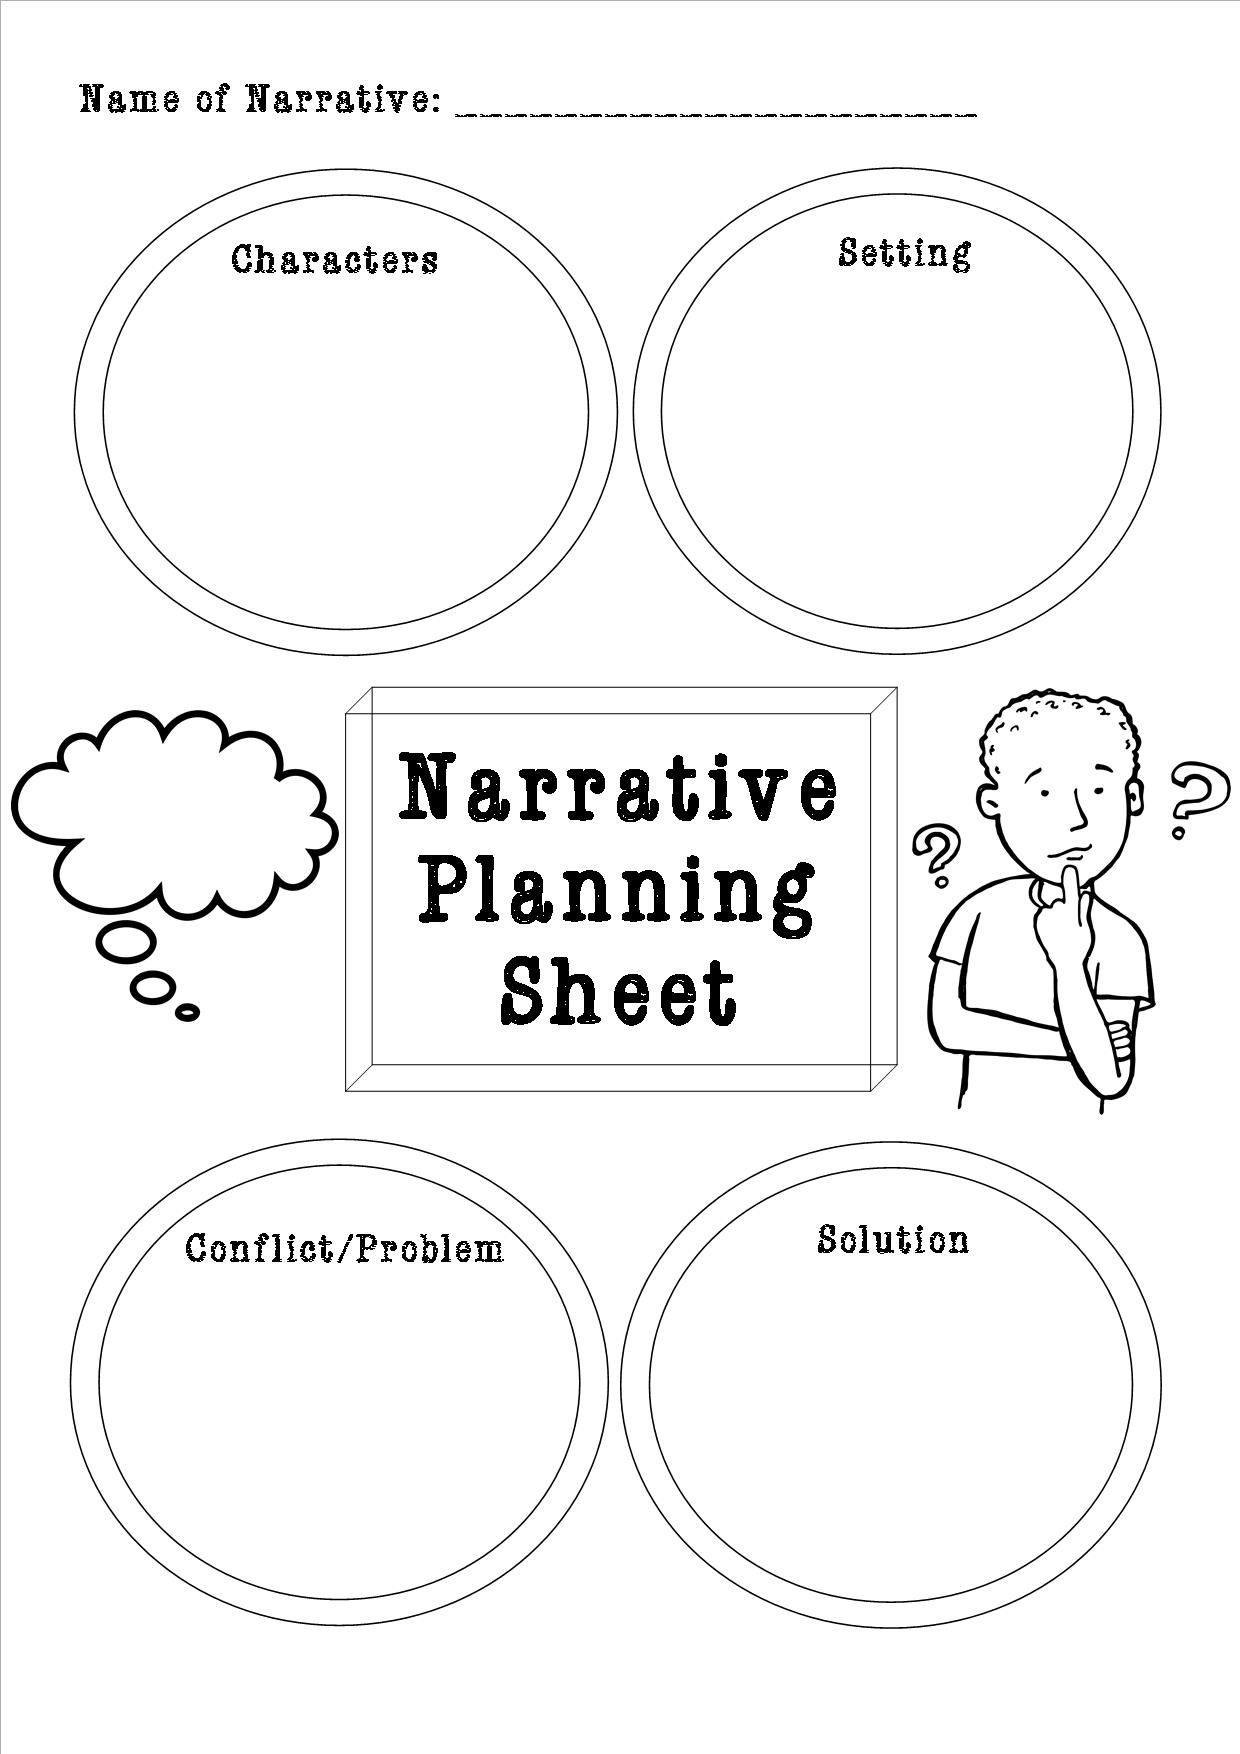 narrative writing planning sheet Writing assignment fra mework and overview  tools for planning and reflection  writing assignment framework and overview are the result of 1:3¶v third study.